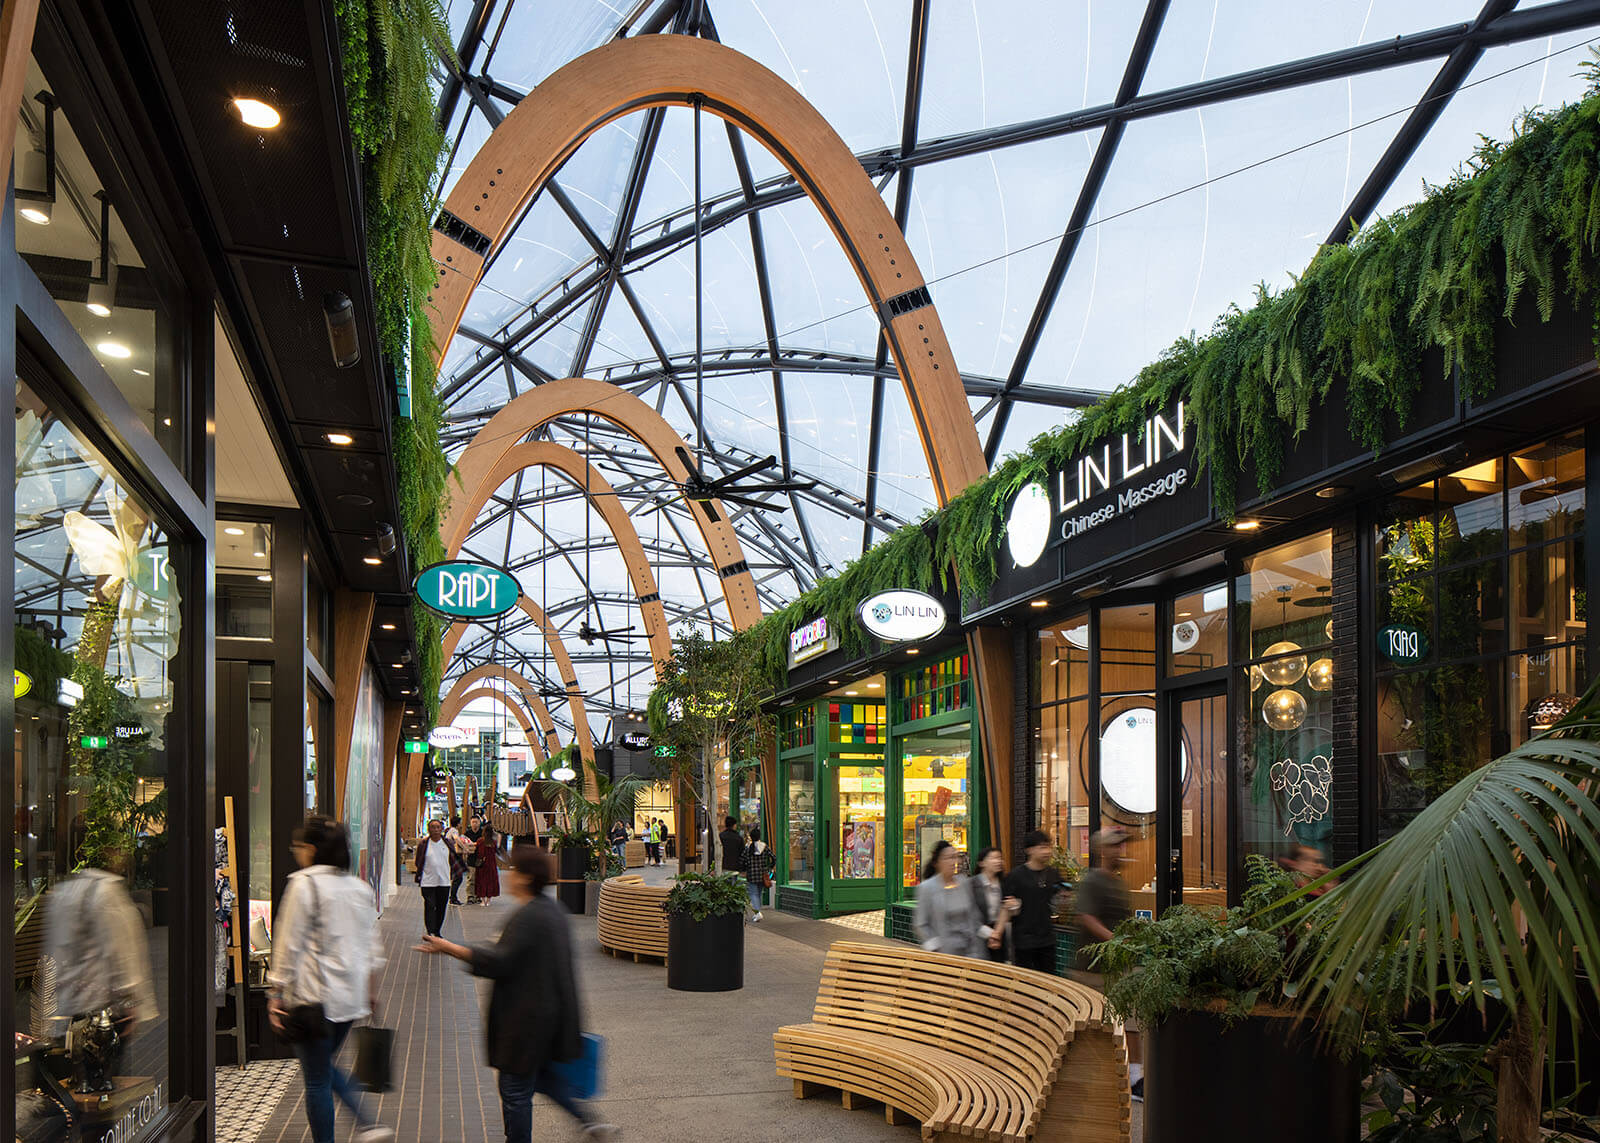 The canopy creates an open-air atmosphere